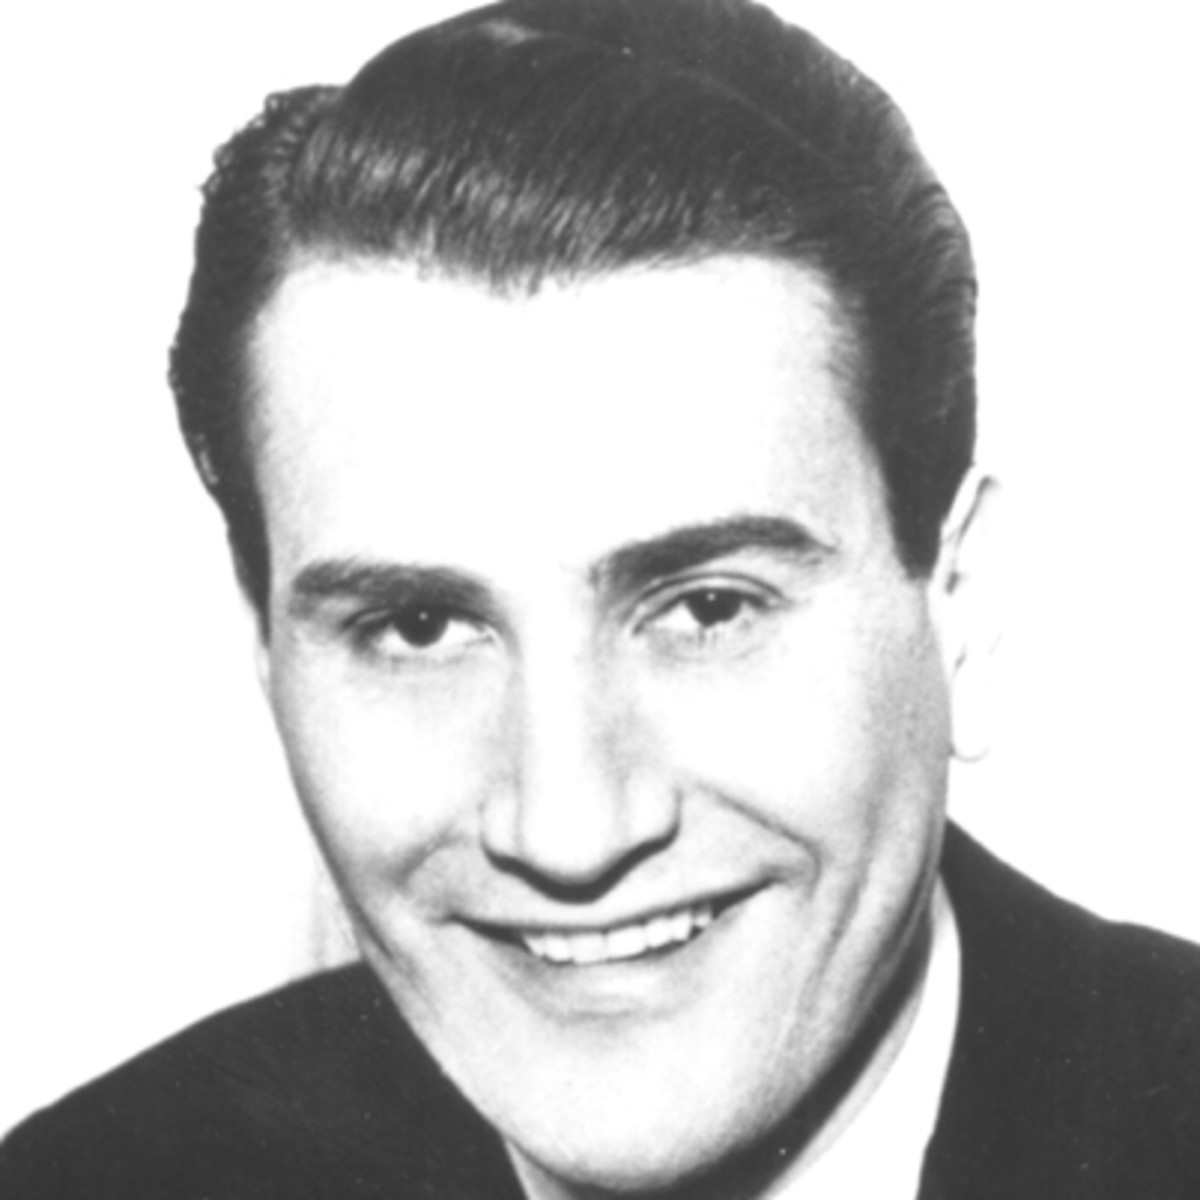 Artie Shaw Genre Artie Shaw Songwriter Biography